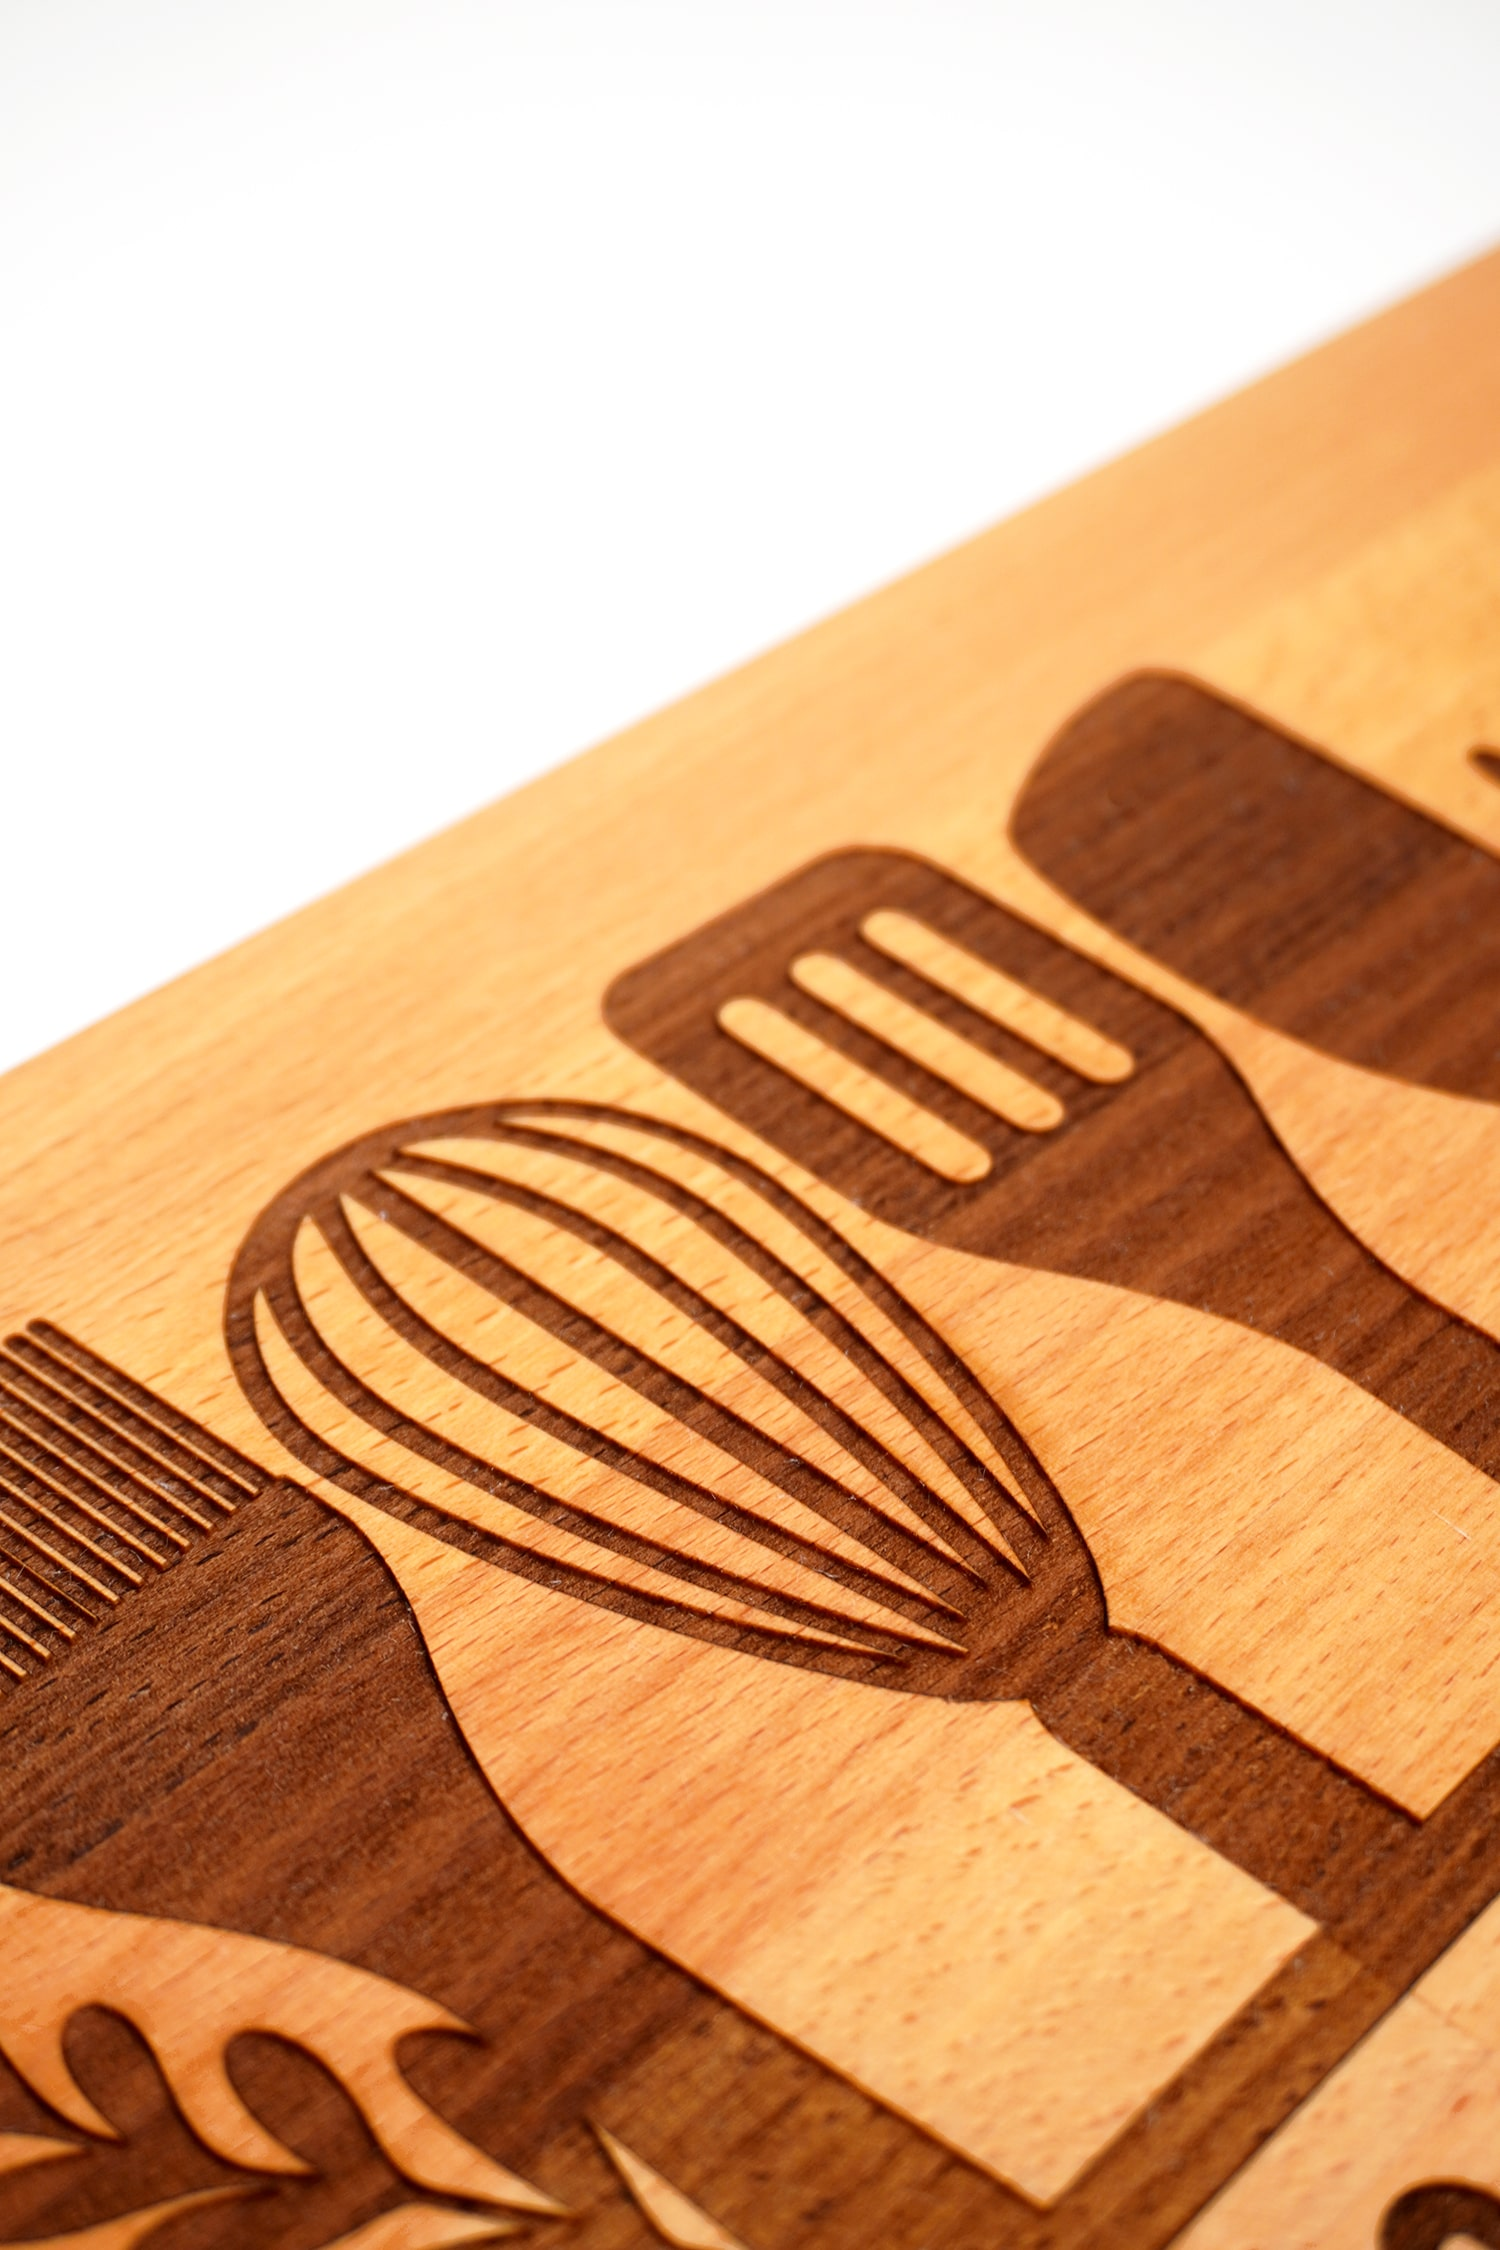 Close up detail of Glowforge engraved cutting board